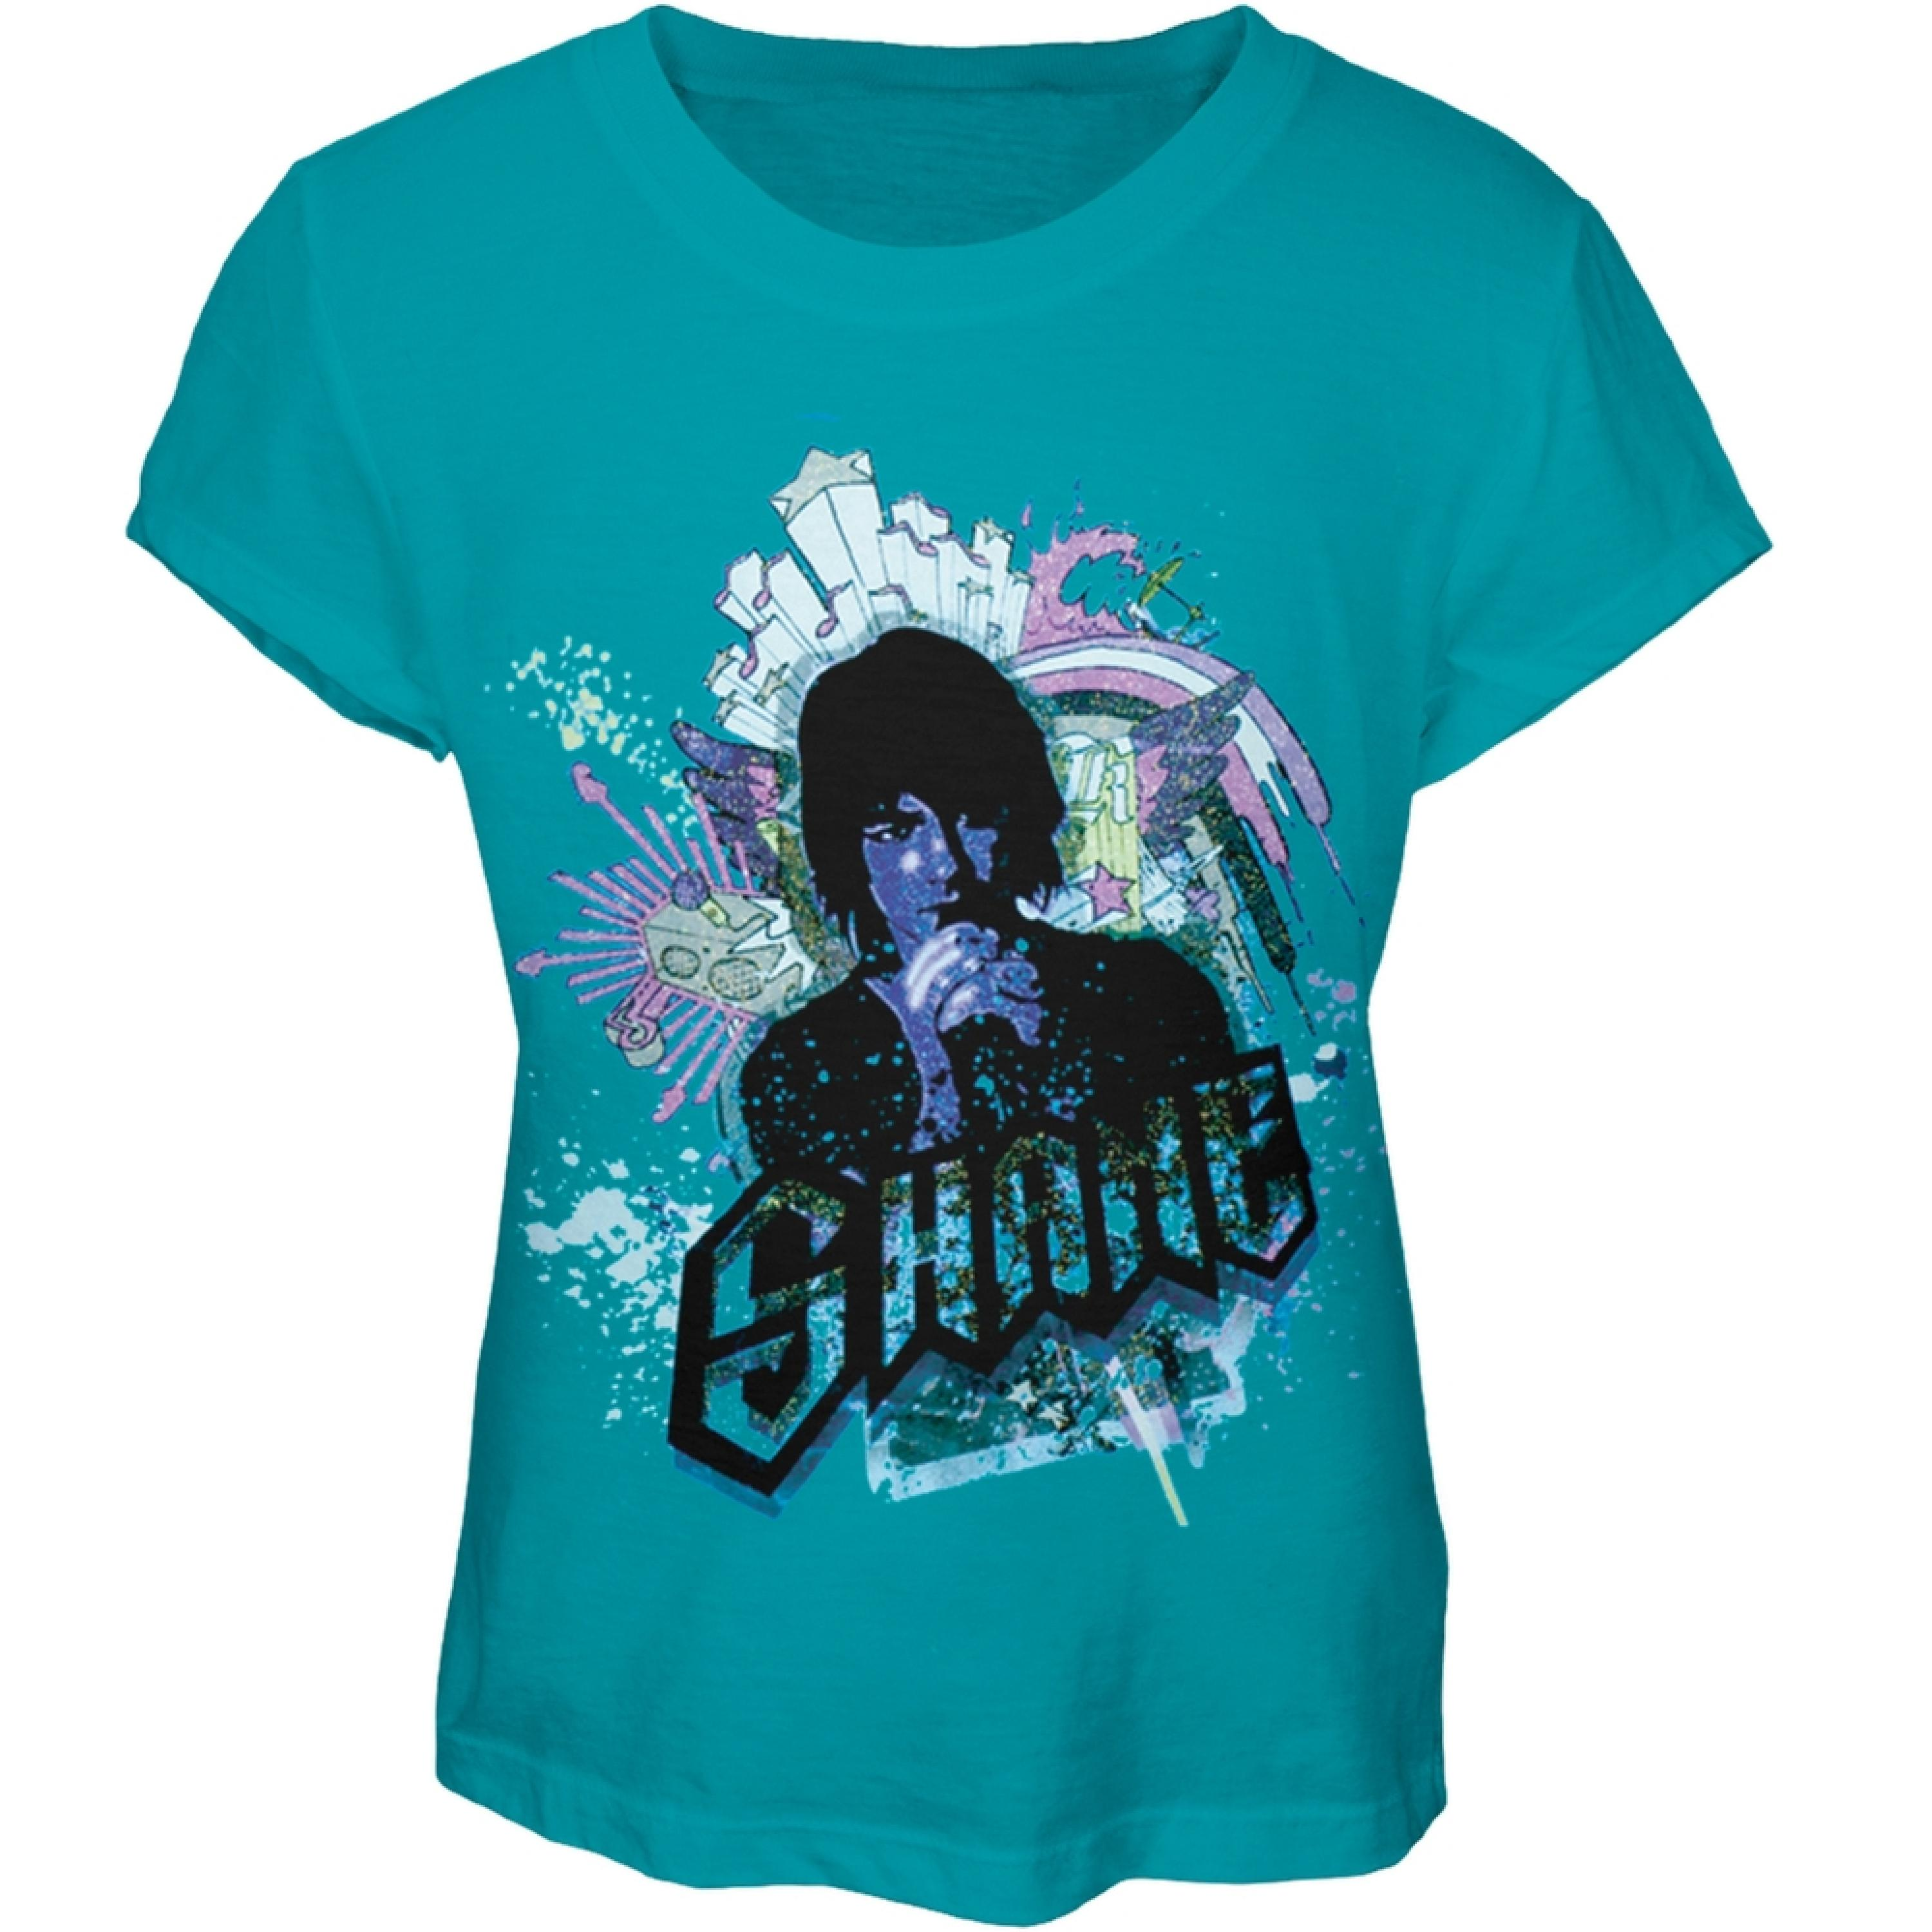 Camp Rock - Shane Graffiti Girls Youth T-Shirt